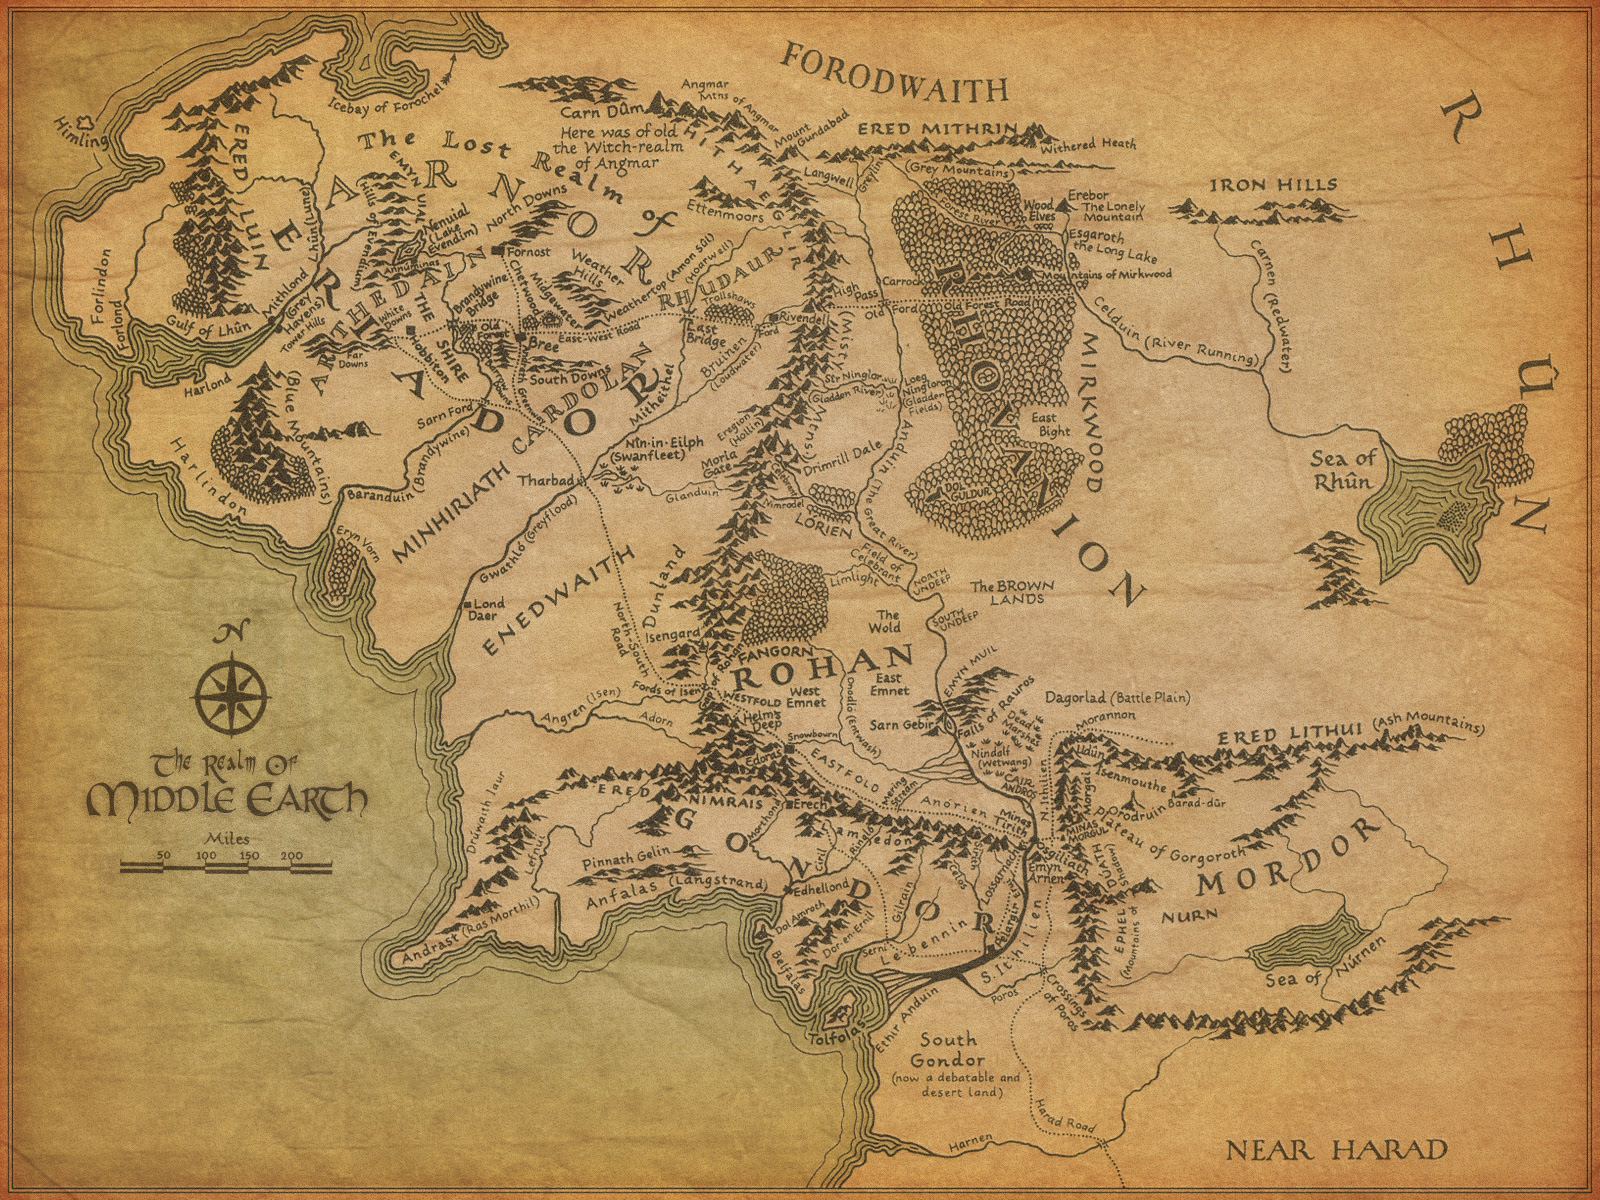 http://www.monkeyinthecage.com/wp-content/uploads/2012/11/Map-of-Middle-earth.jpg